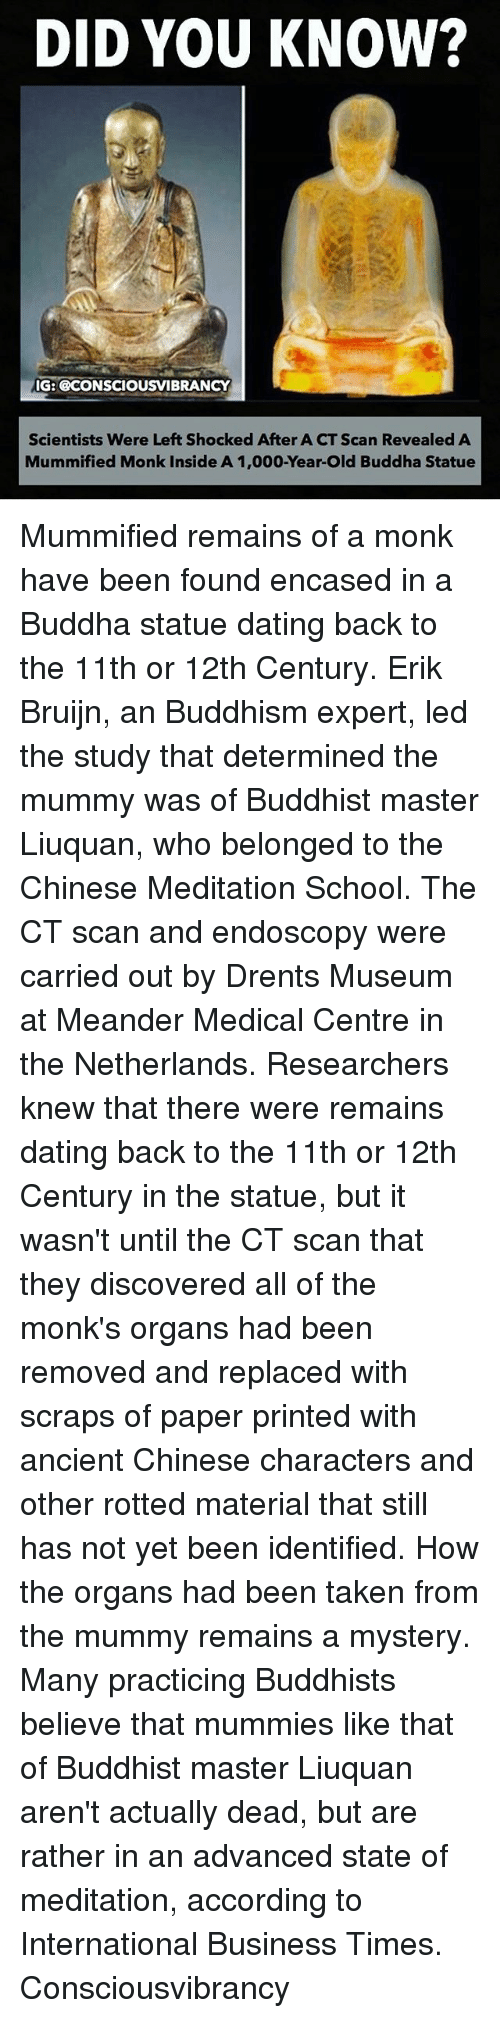 Dating, Memes, and School: DID YOU KNOW?  IG: BCONSCIOUSVIBRANCY  Scientists Were Left Shocked After A CT Scan Revealed A  Mummified Monk Inside A 1,000-Year-Old Buddha Statue Mummified remains of a monk have been found encased in a Buddha statue dating back to the 11th or 12th Century. Erik Bruijn, an Buddhism expert, led the study that determined the mummy was of Buddhist master Liuquan, who belonged to the Chinese Meditation School. The CT scan and endoscopy were carried out by Drents Museum at Meander Medical Centre in the Netherlands. Researchers knew that there were remains dating back to the 11th or 12th Century in the statue, but it wasn't until the CT scan that they discovered all of the monk's organs had been removed and replaced with scraps of paper printed with ancient Chinese characters and other rotted material that still has not yet been identified. How the organs had been taken from the mummy remains a mystery. Many practicing Buddhists believe that mummies like that of Buddhist master Liuquan aren't actually dead, but are rather in an advanced state of meditation, according to International Business Times. Consciousvibrancy